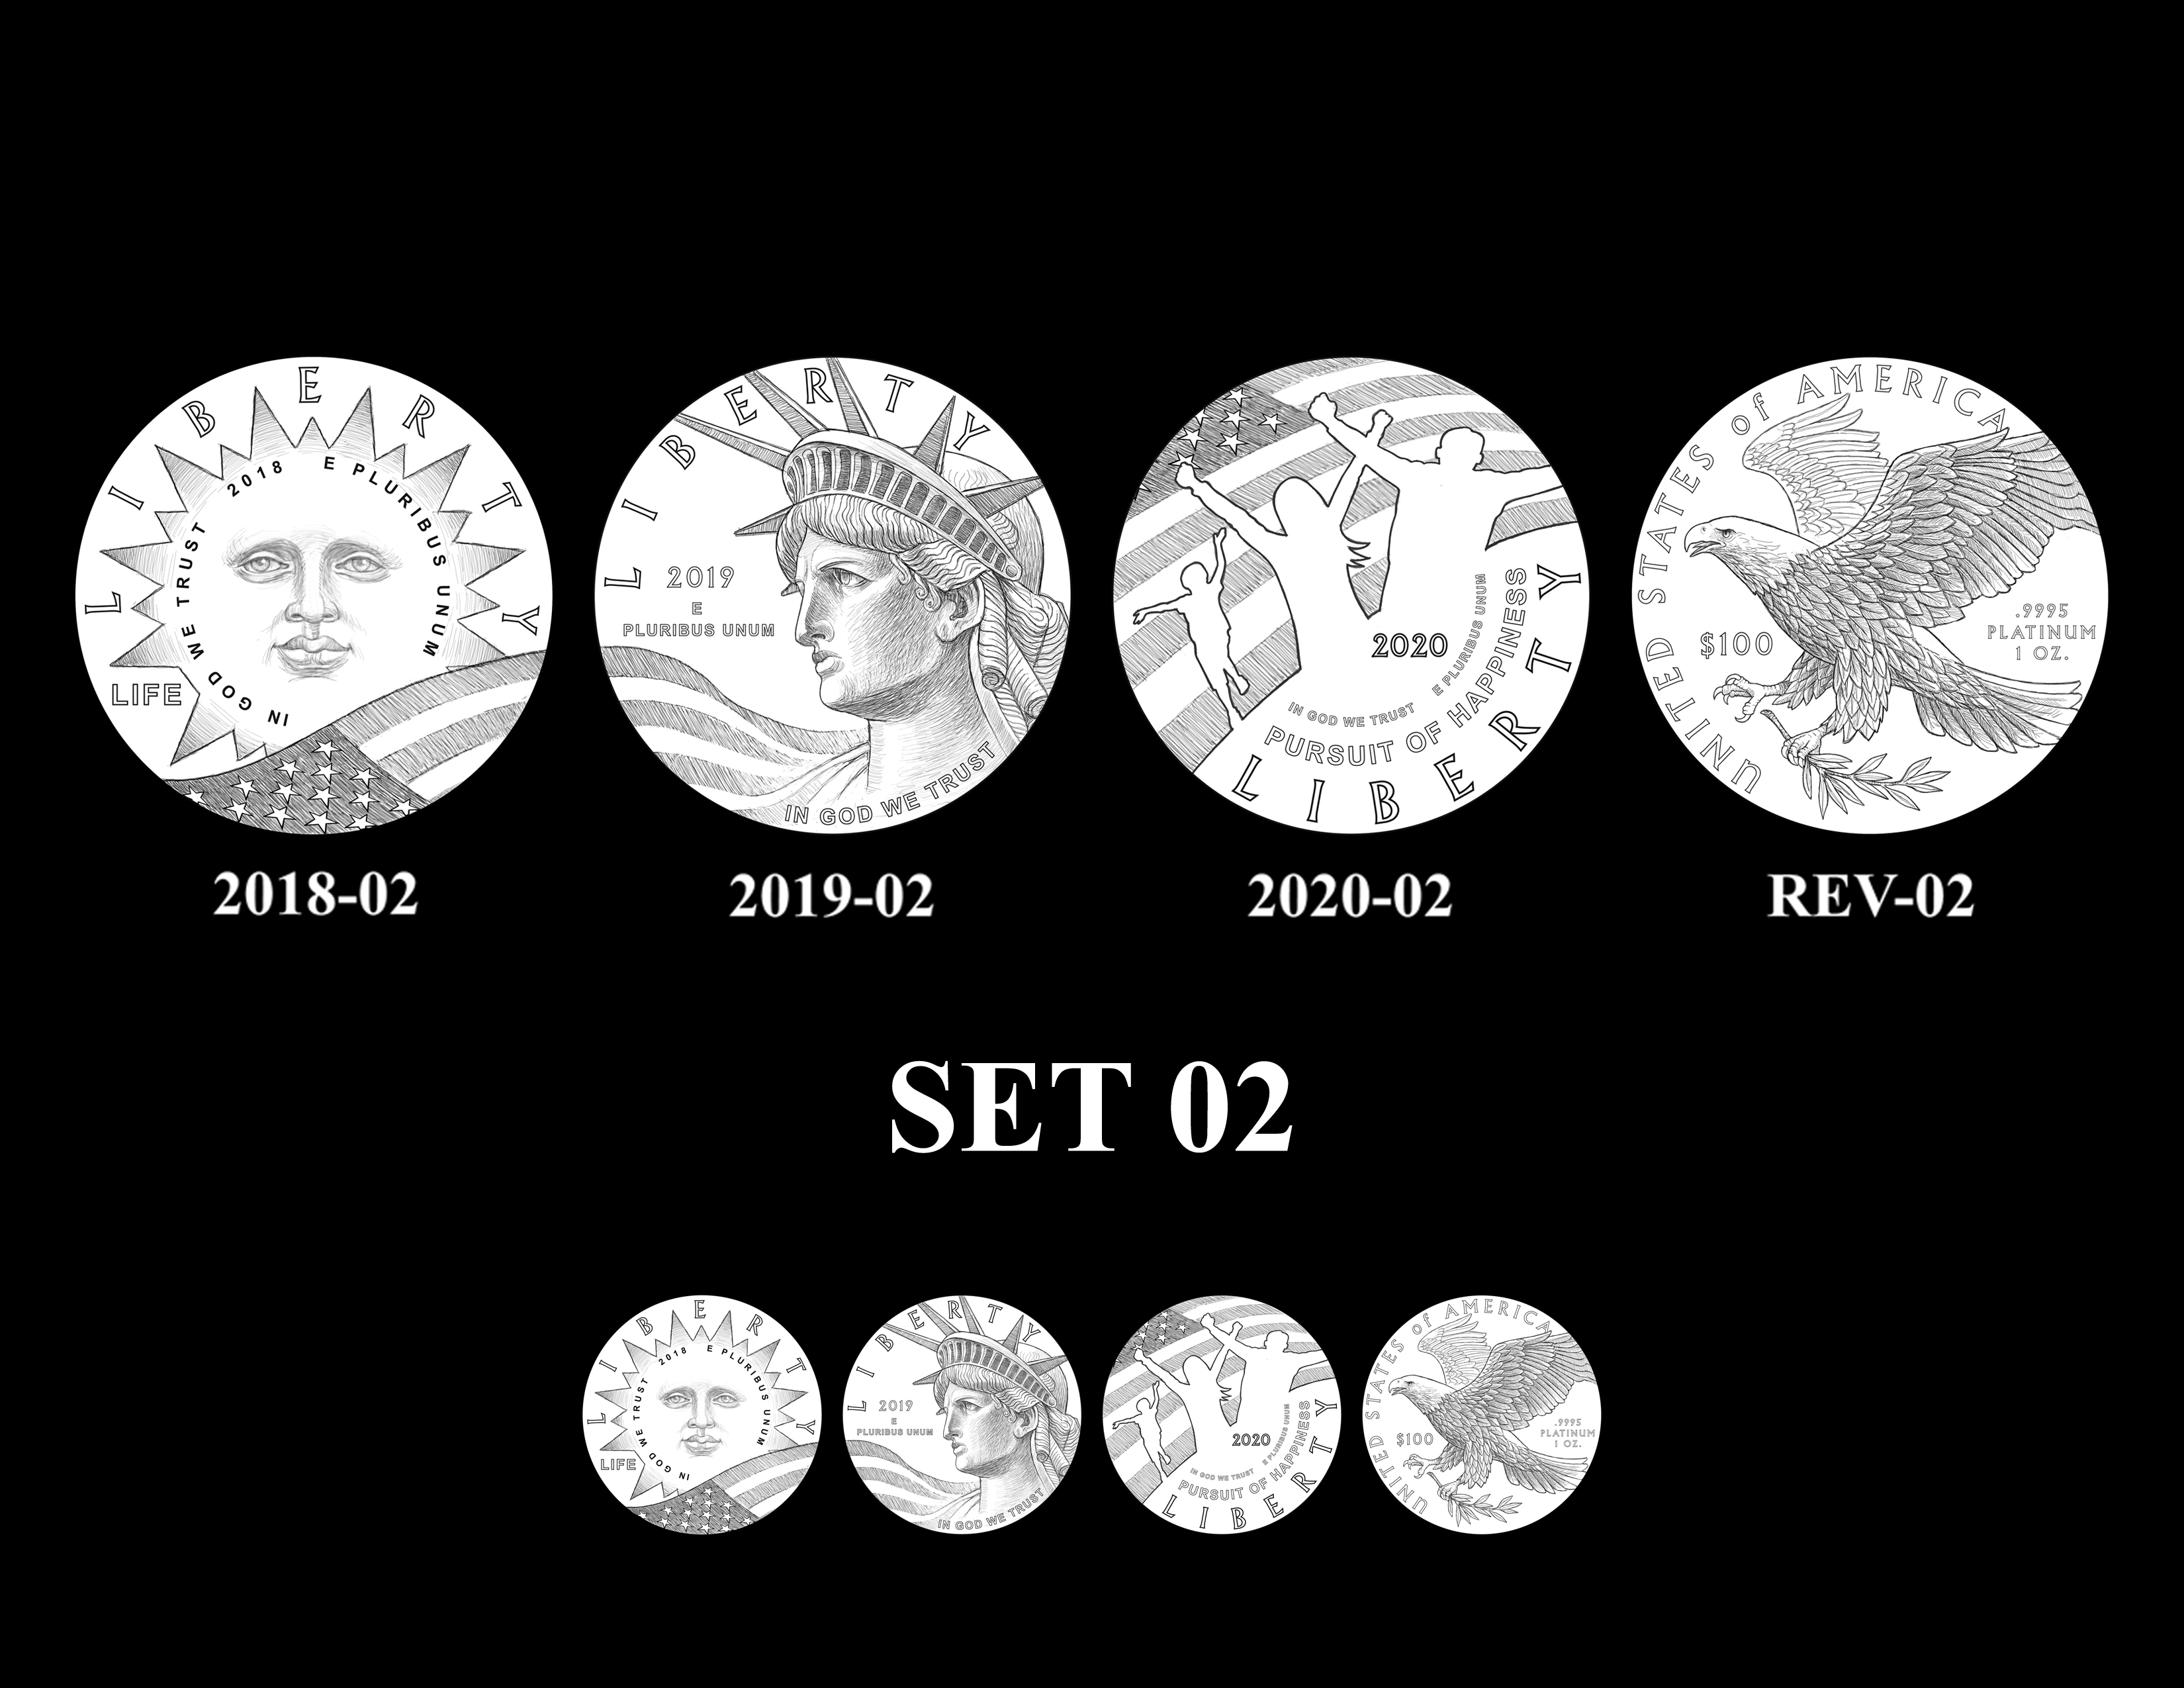 SET 02 - 2018 2019 and 2020 American Eagle Platinum Proof Program